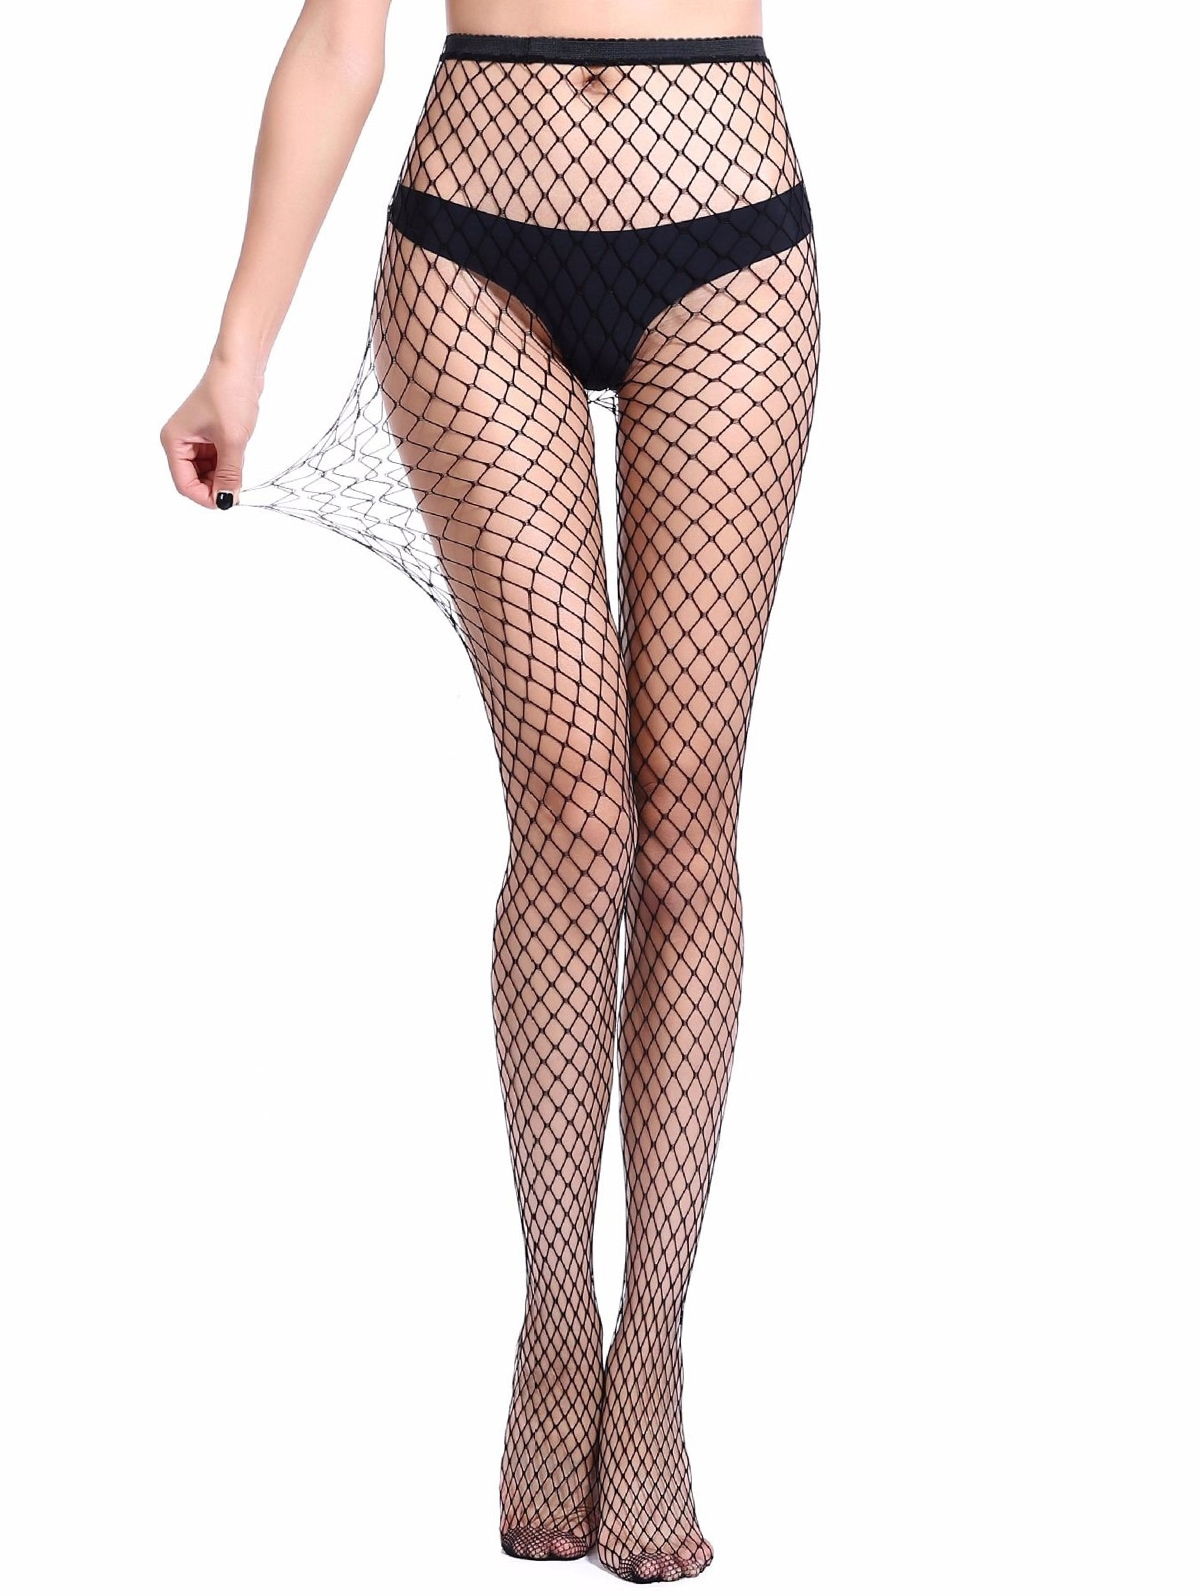 Hollow Mesh Fishing Net Long Pantyhose